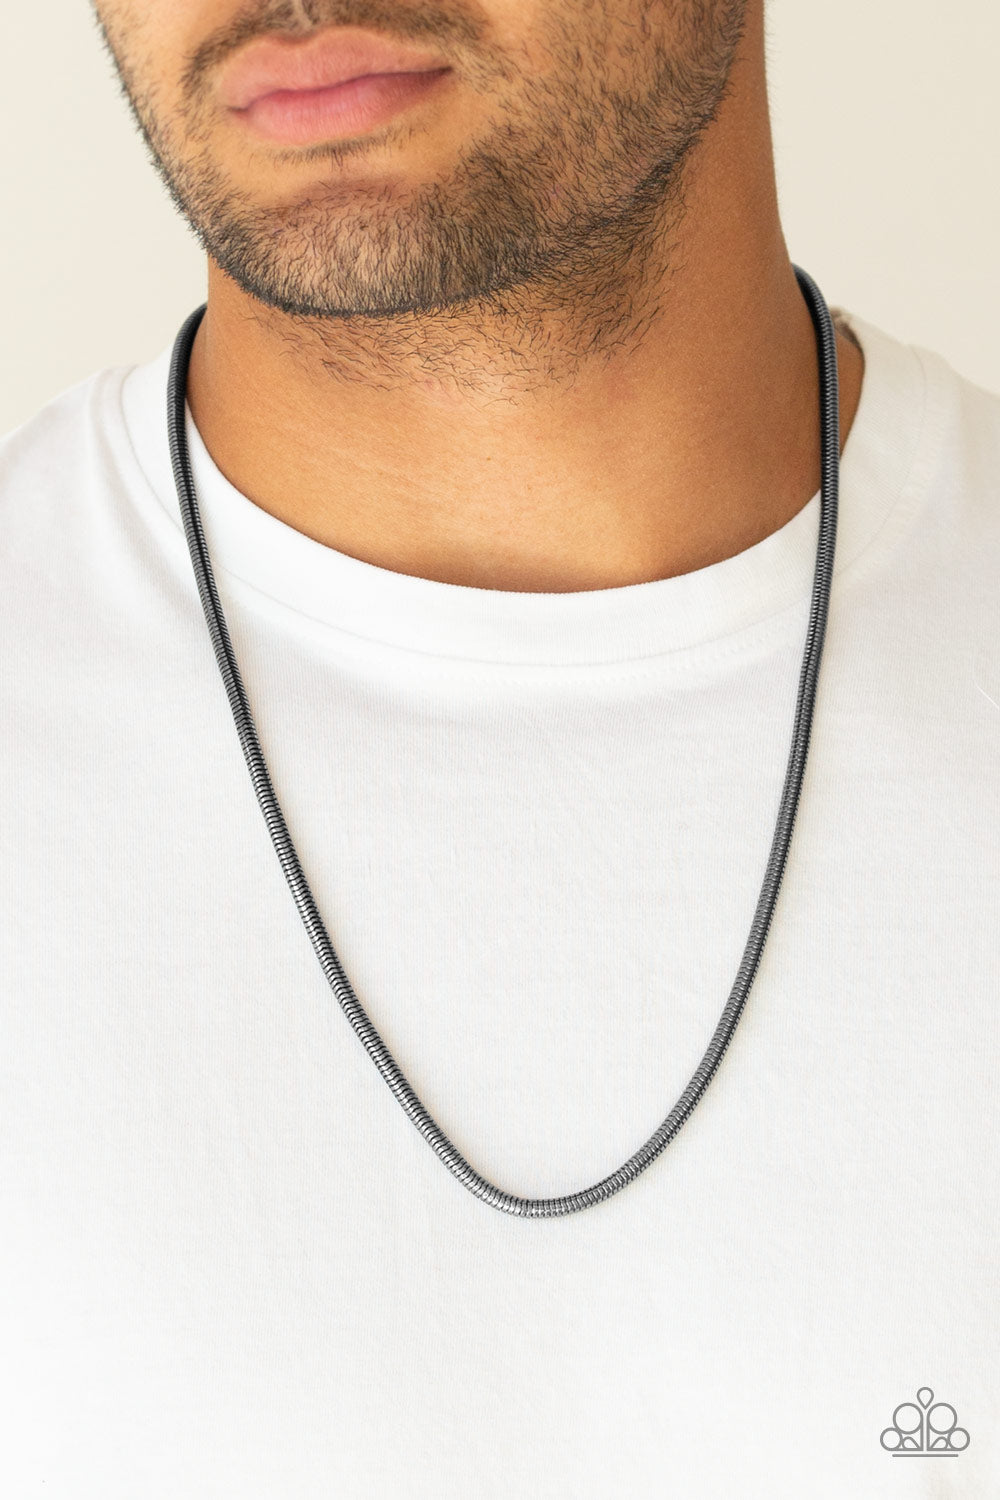 Victory Lap - Black - Necklace